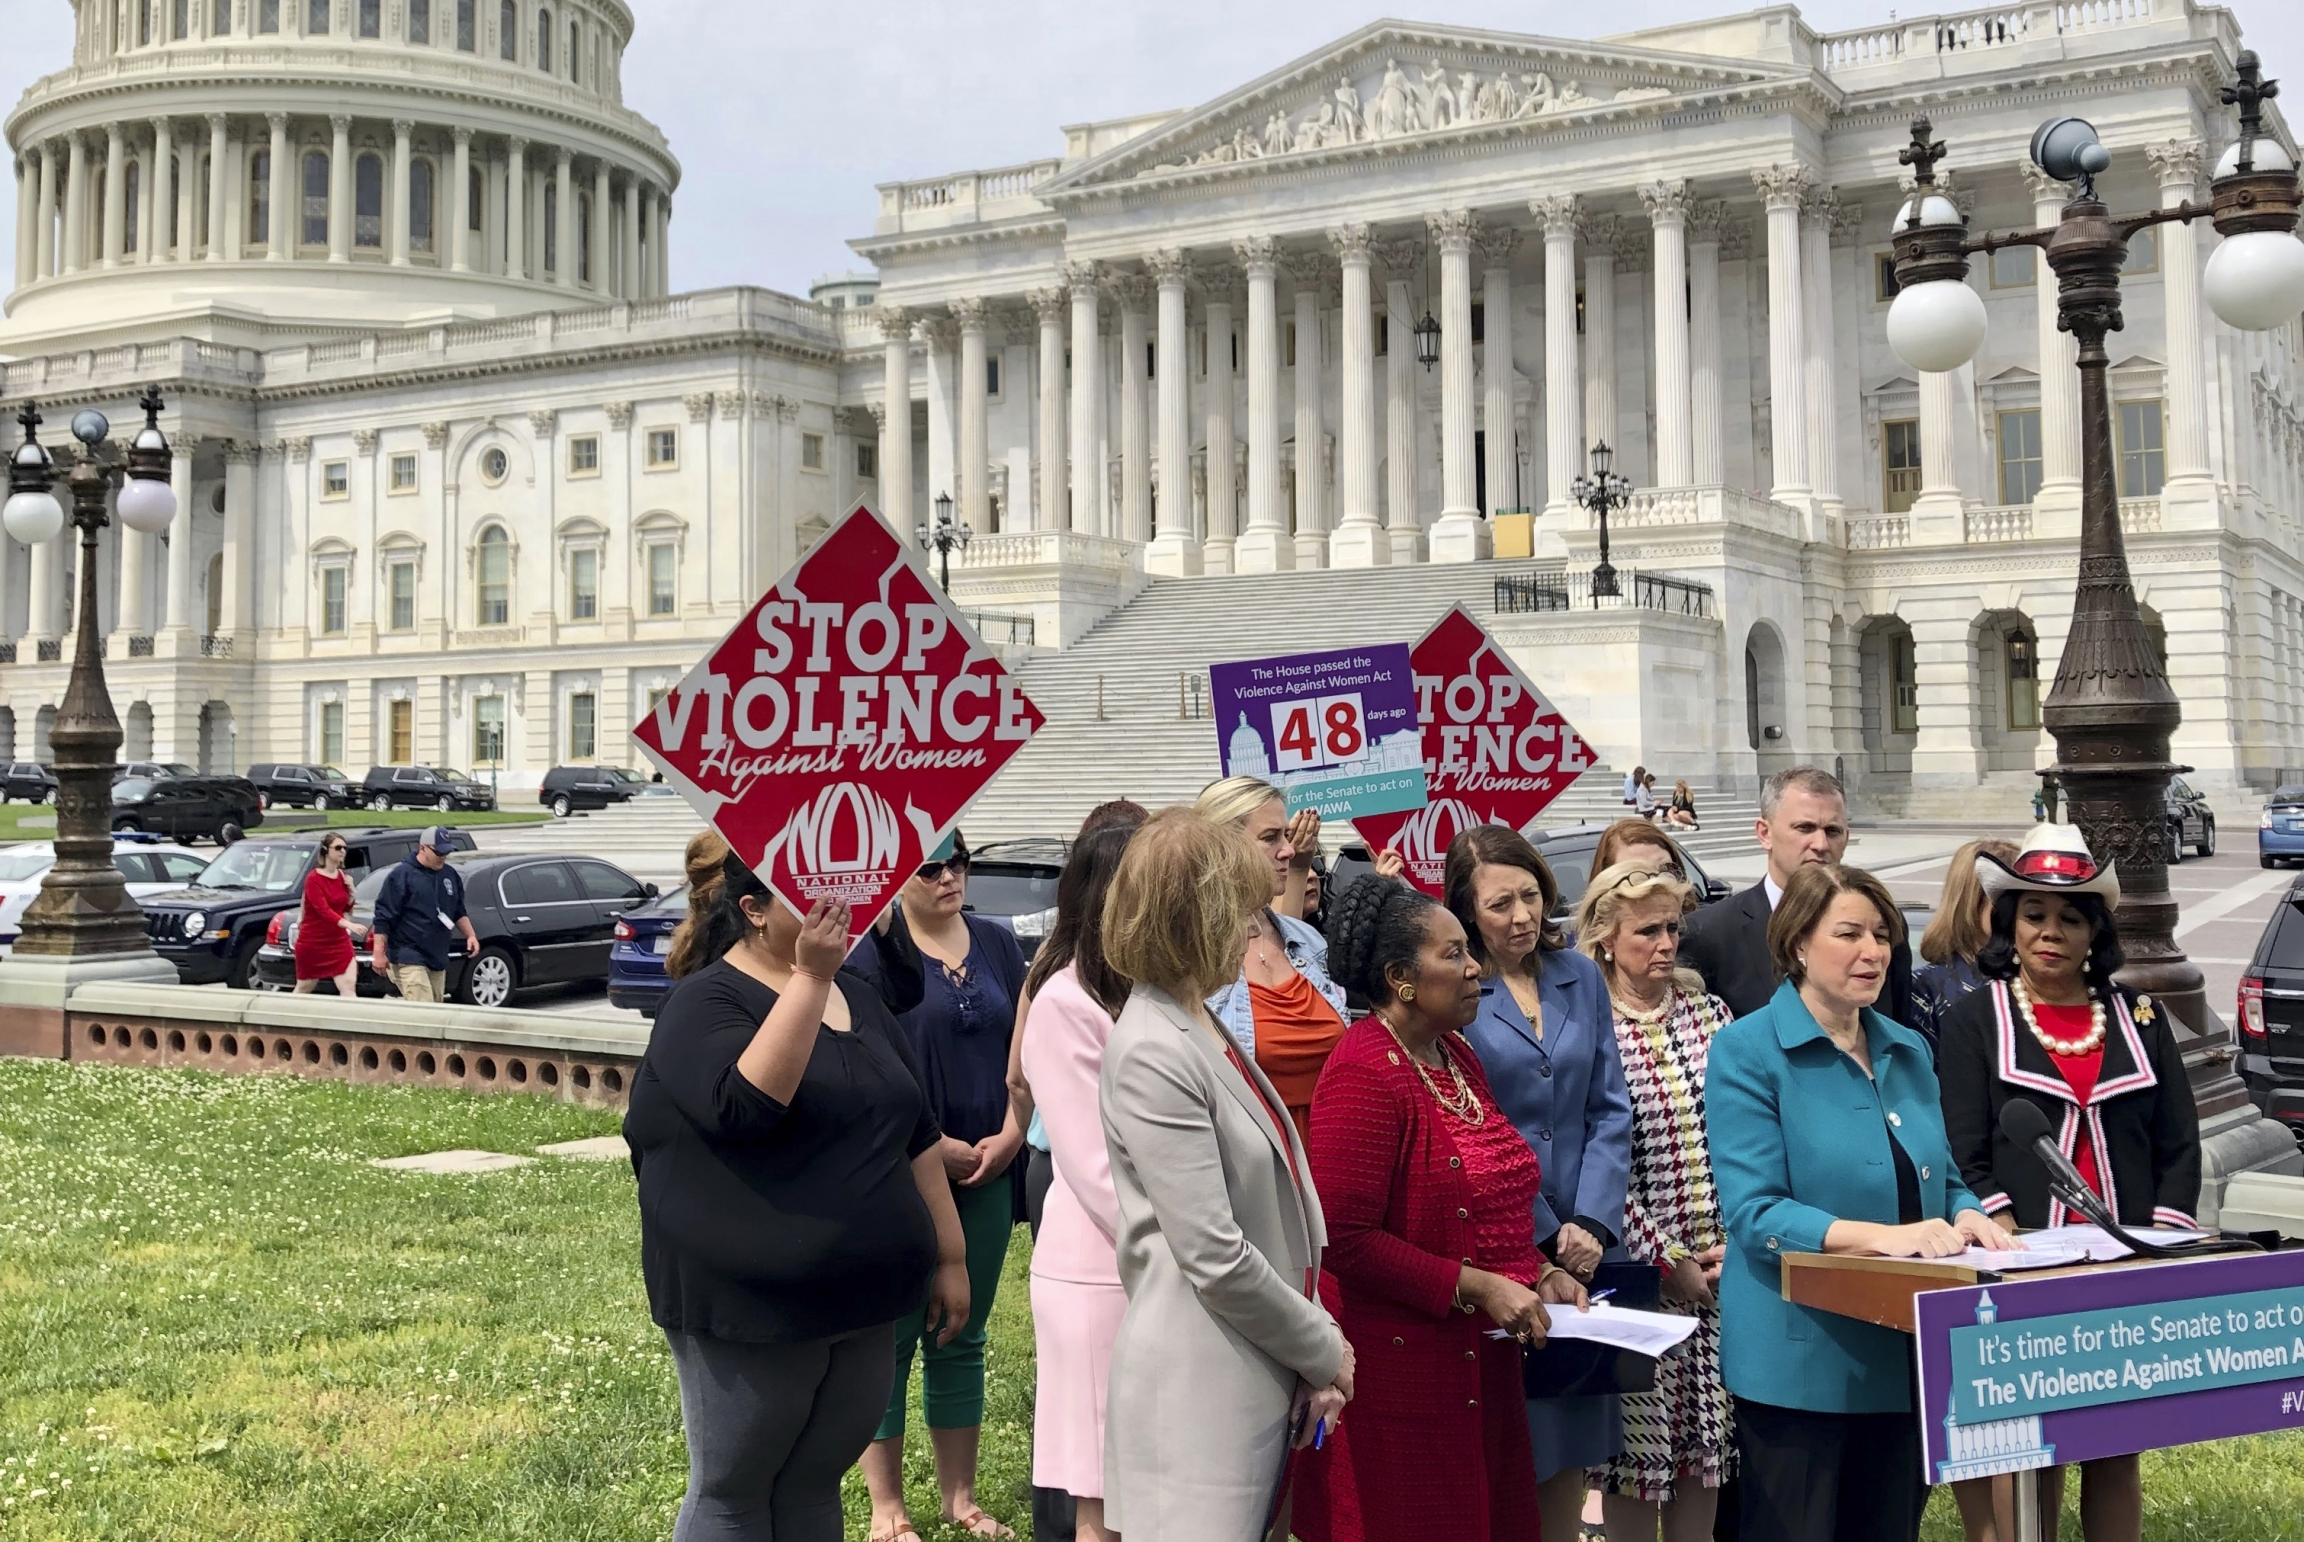 Minnesota Sen. Amy Klobuchar urges Senate to take up a bill renewing the Violence Against Women Act at a news conference outside the US Capitol in Washington, on May 22, 2019.